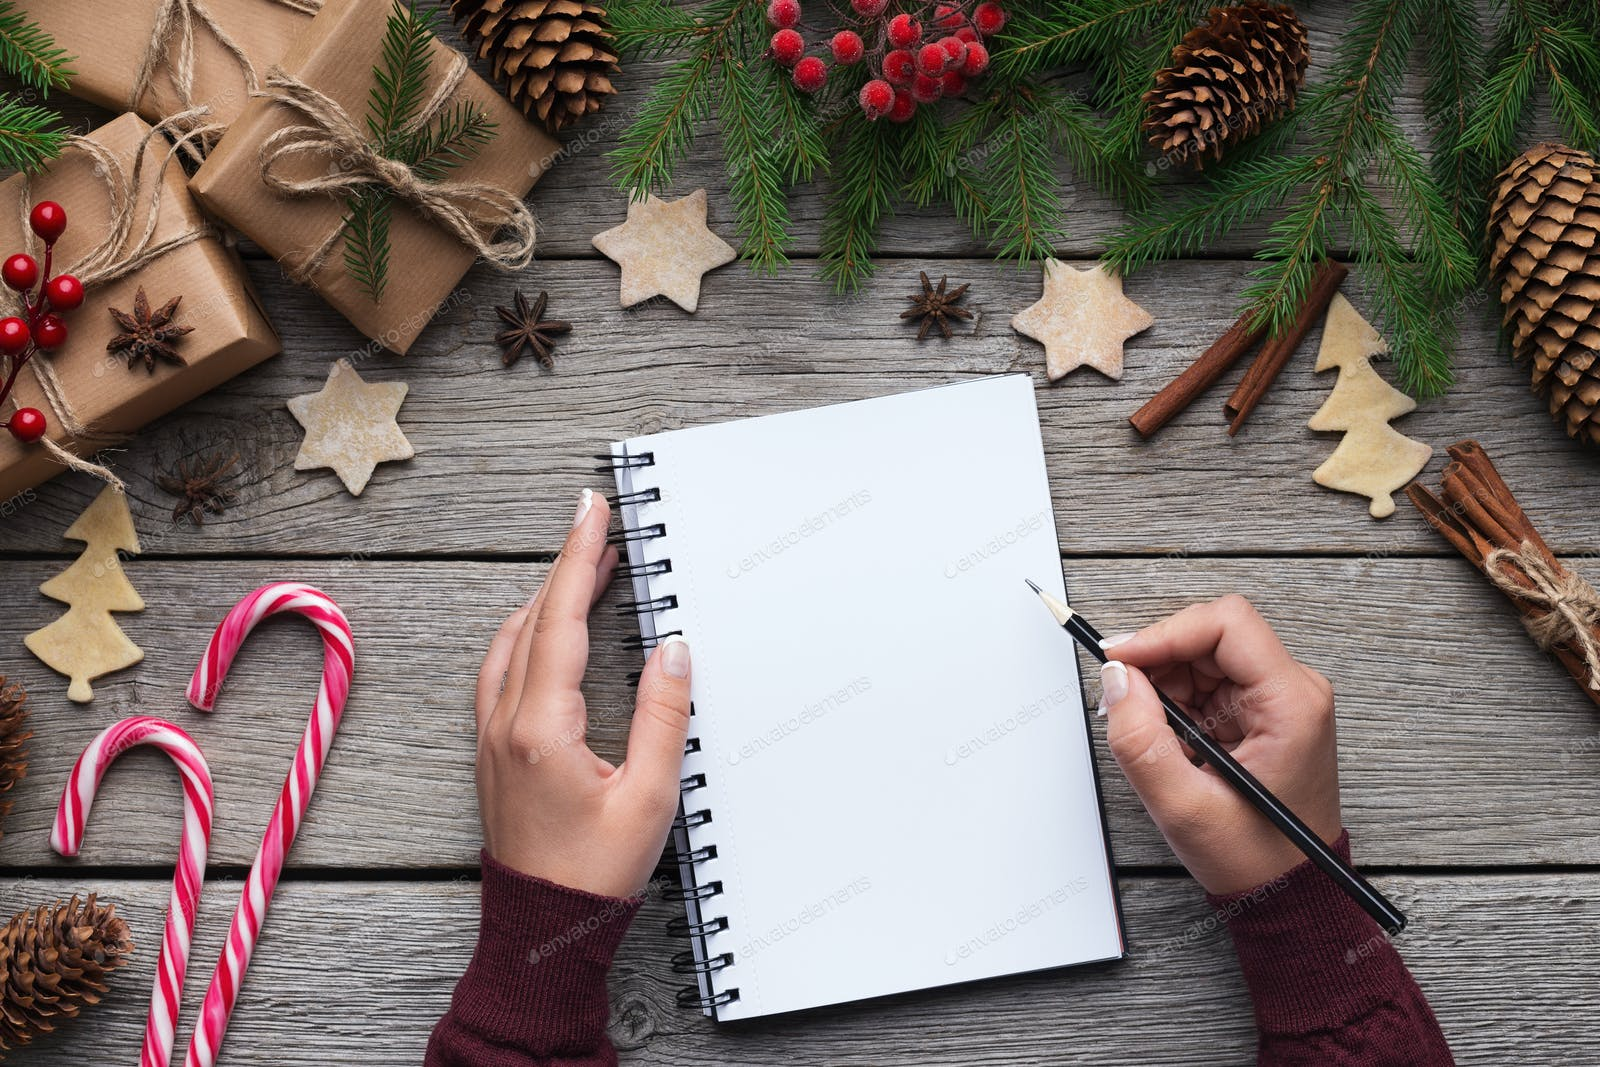 Writing A Christmas Letter from envato-shoebox-0.imgix.net